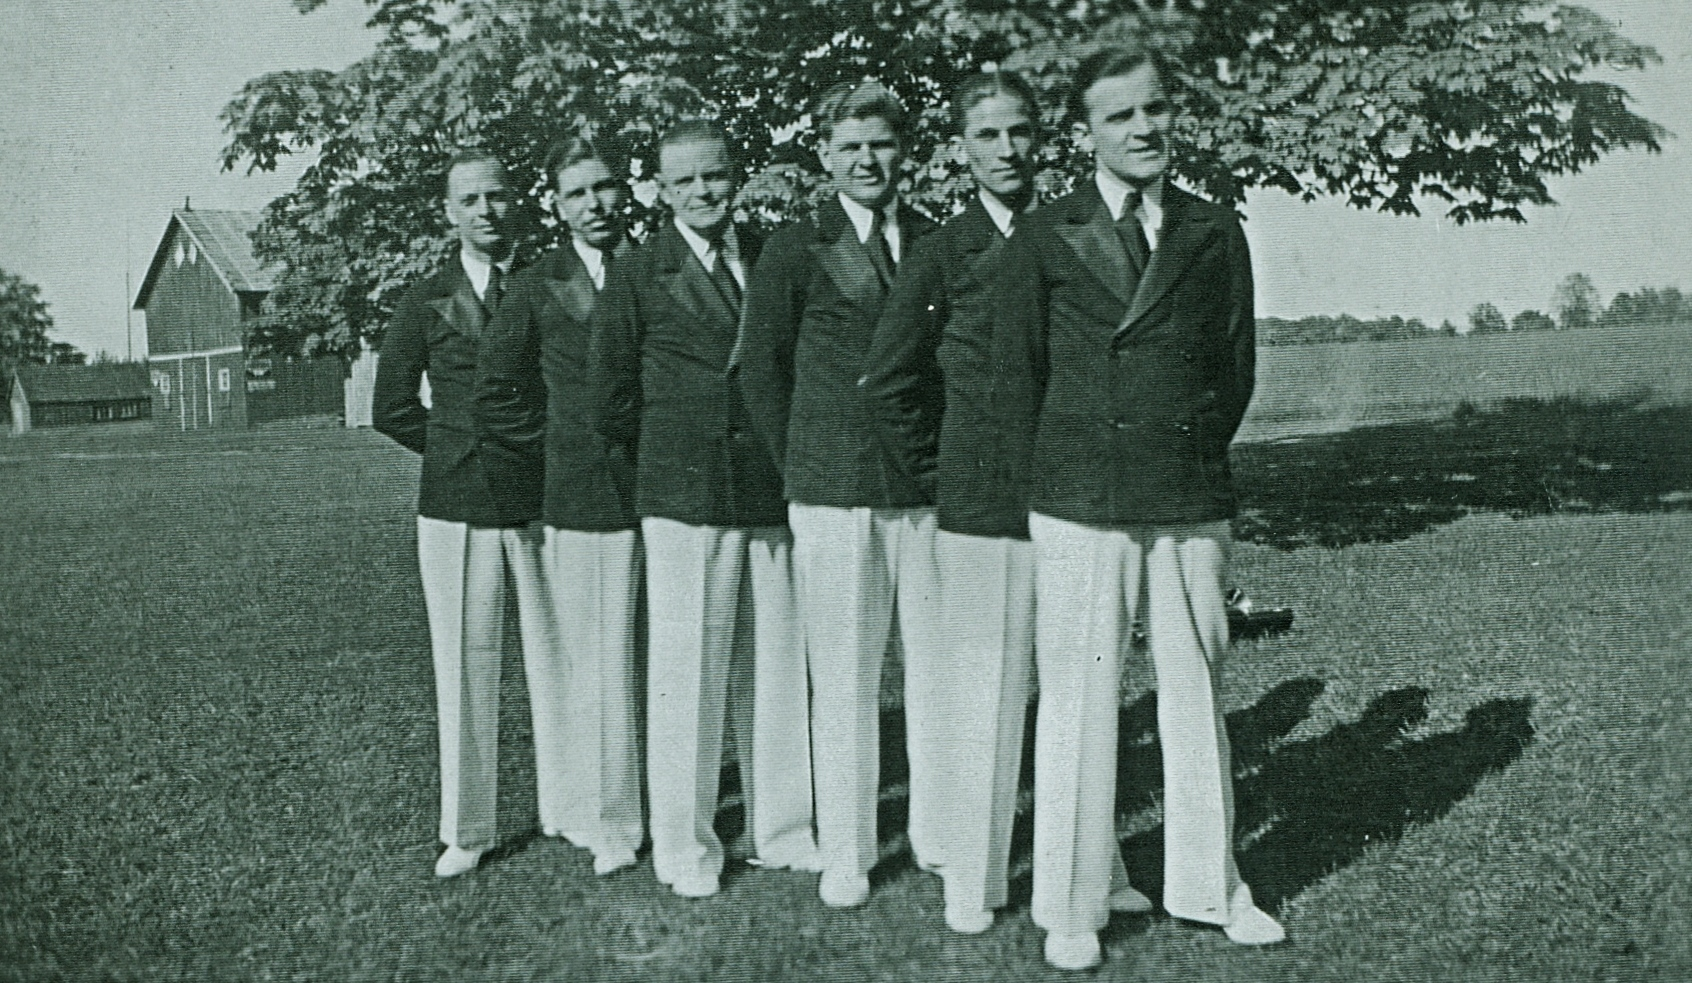 1934 The Aces Band 1931 to 1939  Doug Hutchinson, jack grant,  Fred Doris, Grey Kemp Roy Spalding and  Larry Brown